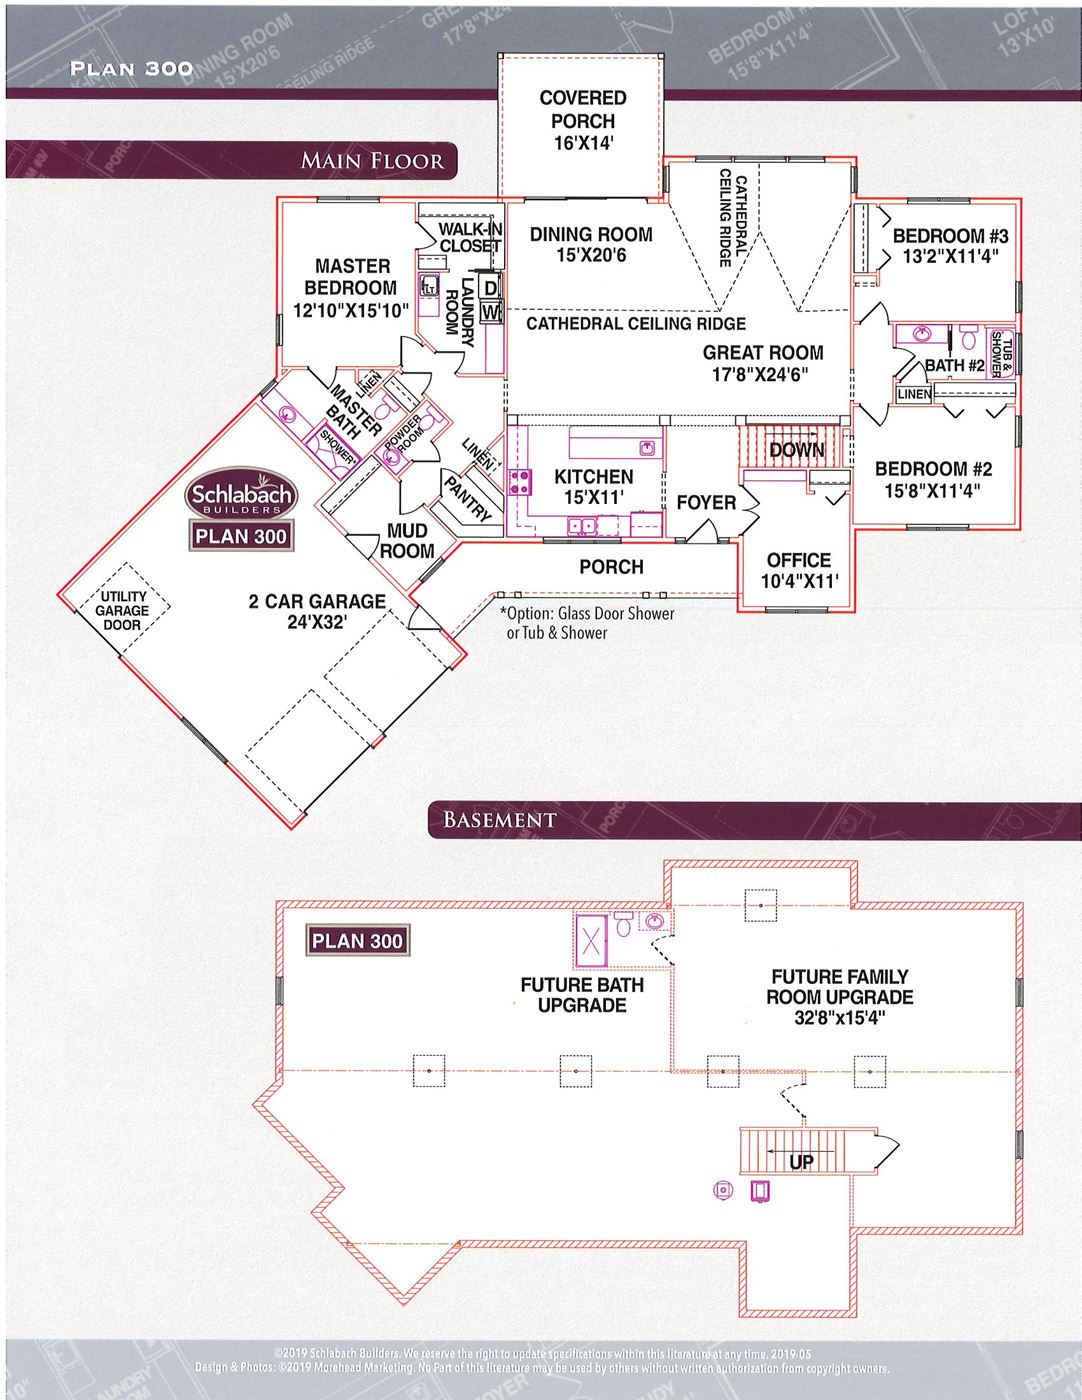 Schlabach Builders Lepi Real Estate Plan 300 2